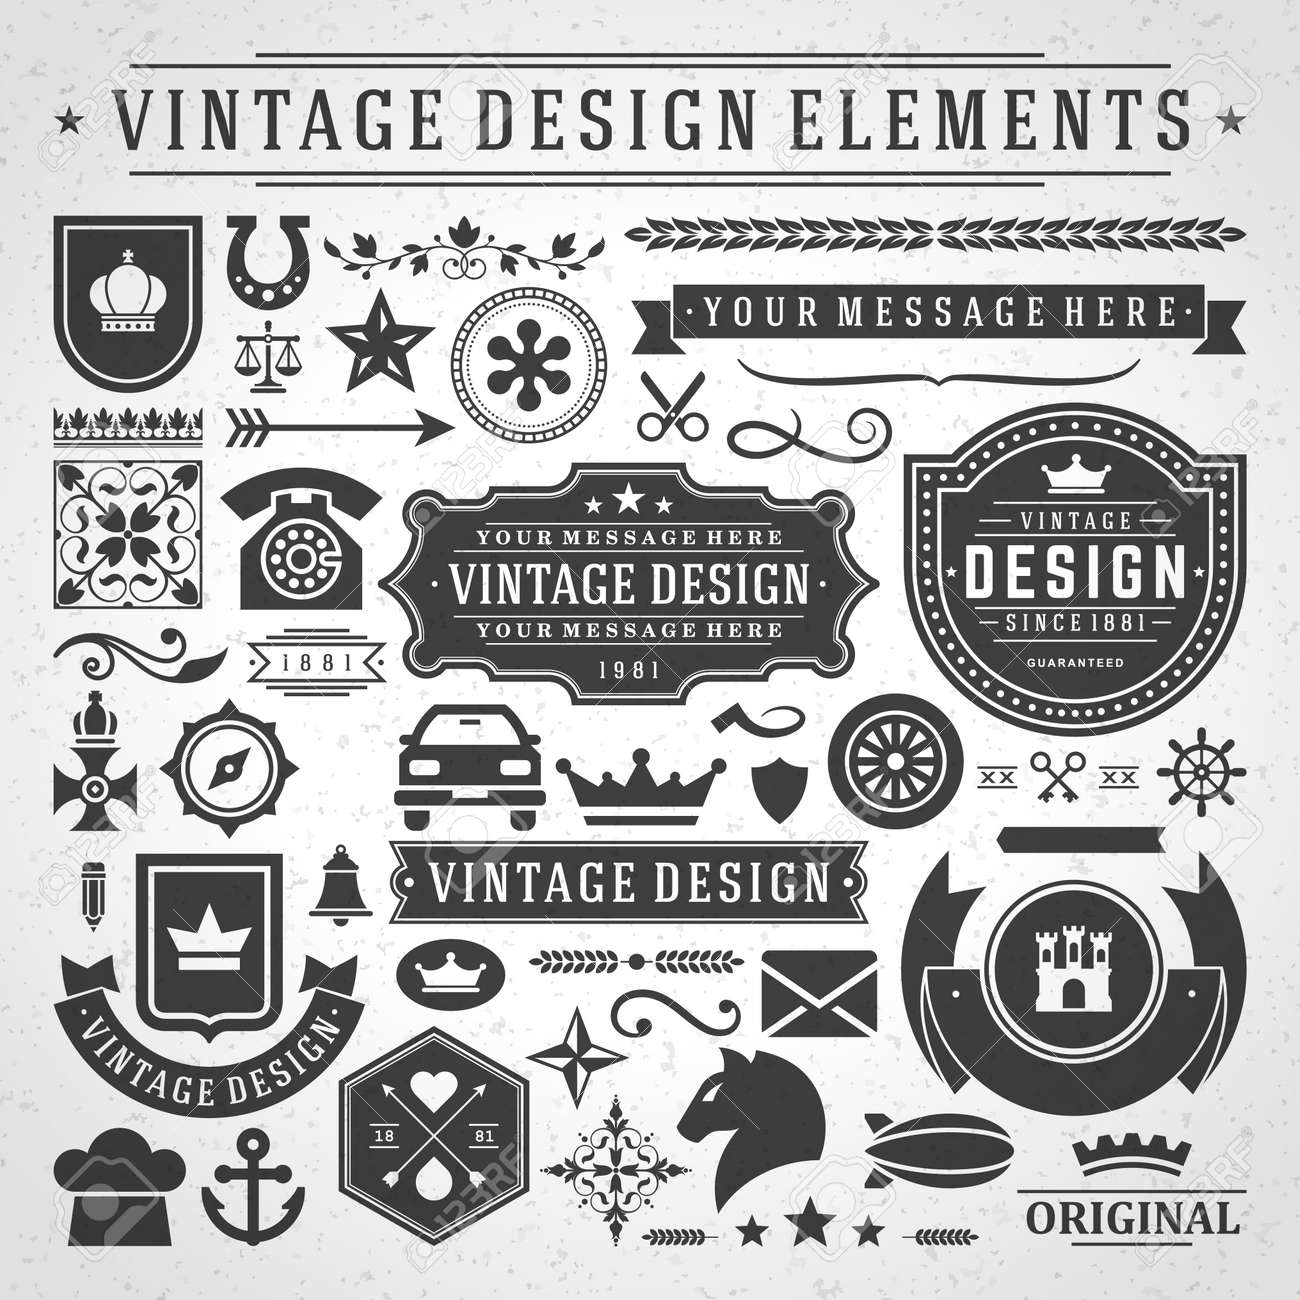 Vintage labels and badges design elements vector with typographic symbols. - 165244986